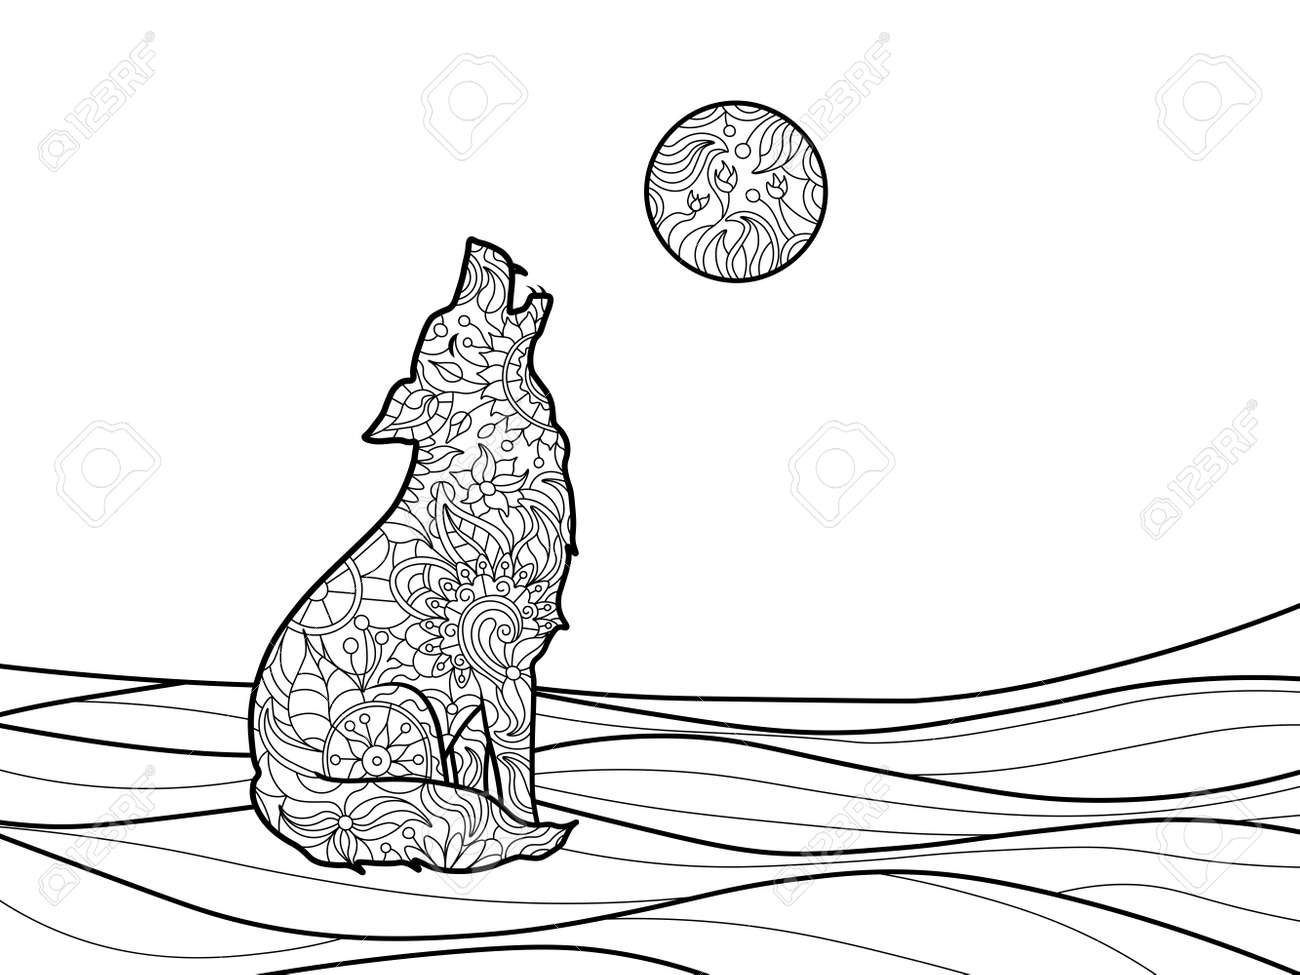 Wolf Coloring Book For Adults Vector Illustration. Royalty Free ...